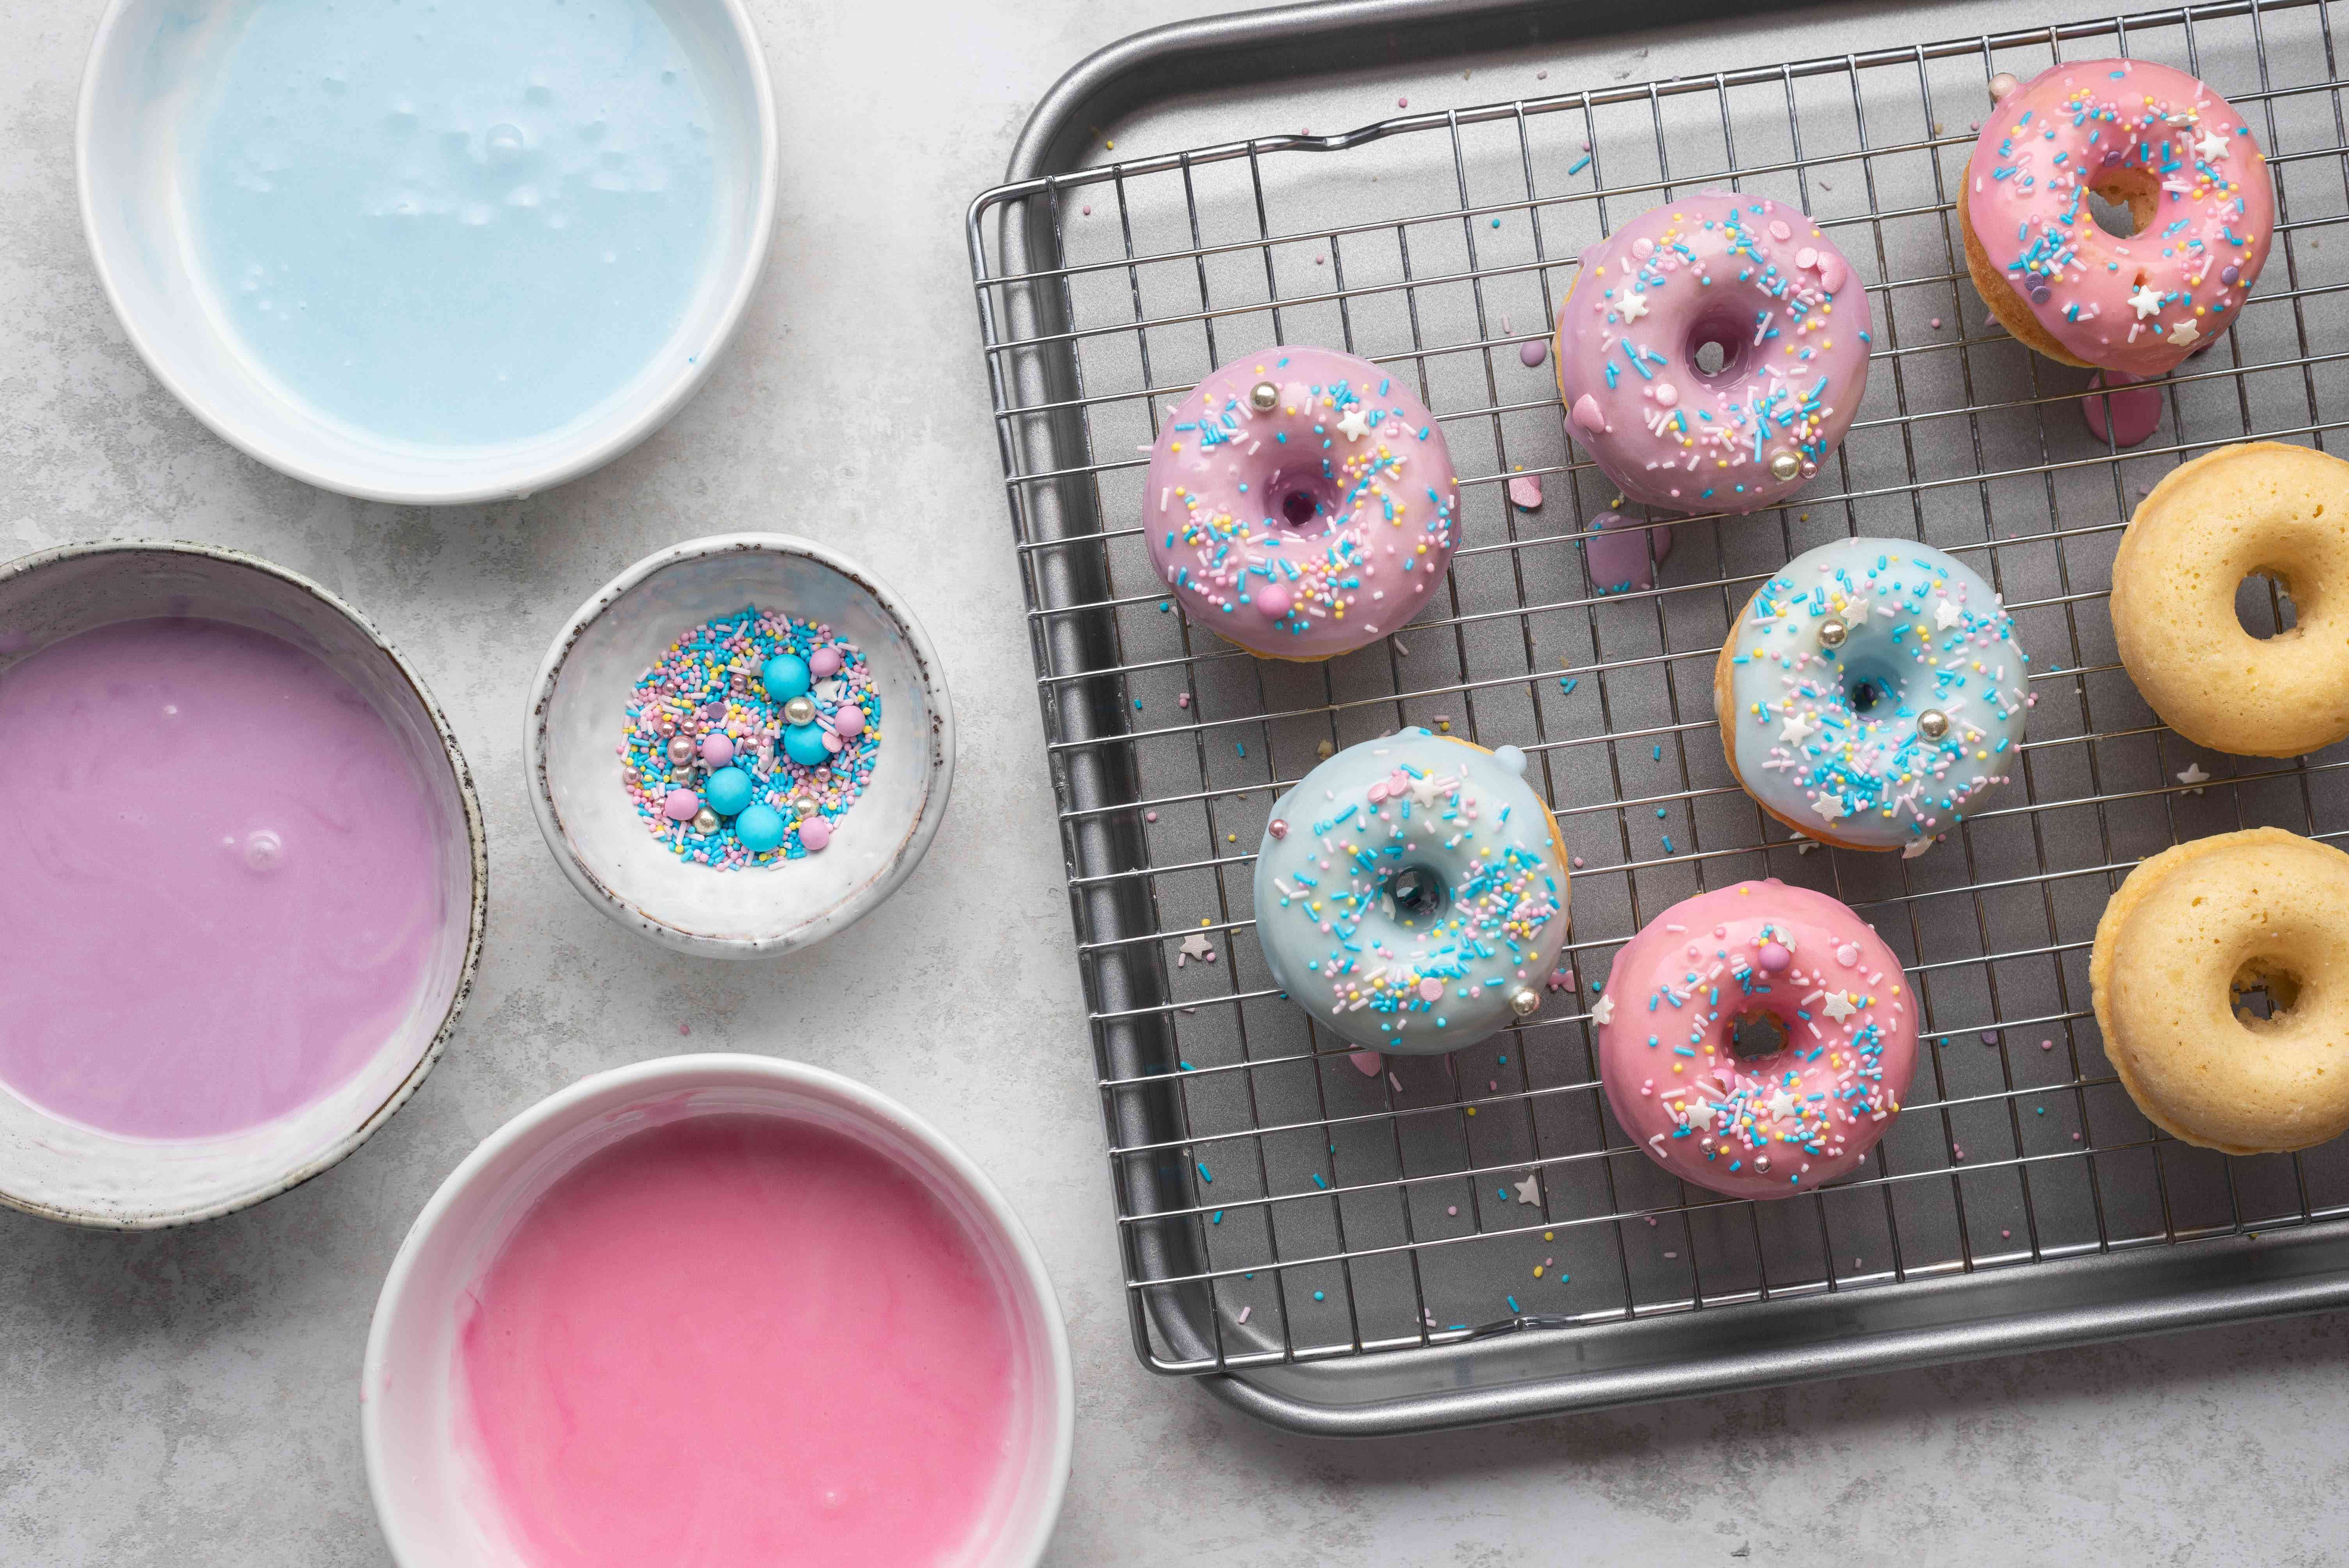 glazed doughnuts with sprinkles on a cooling rack